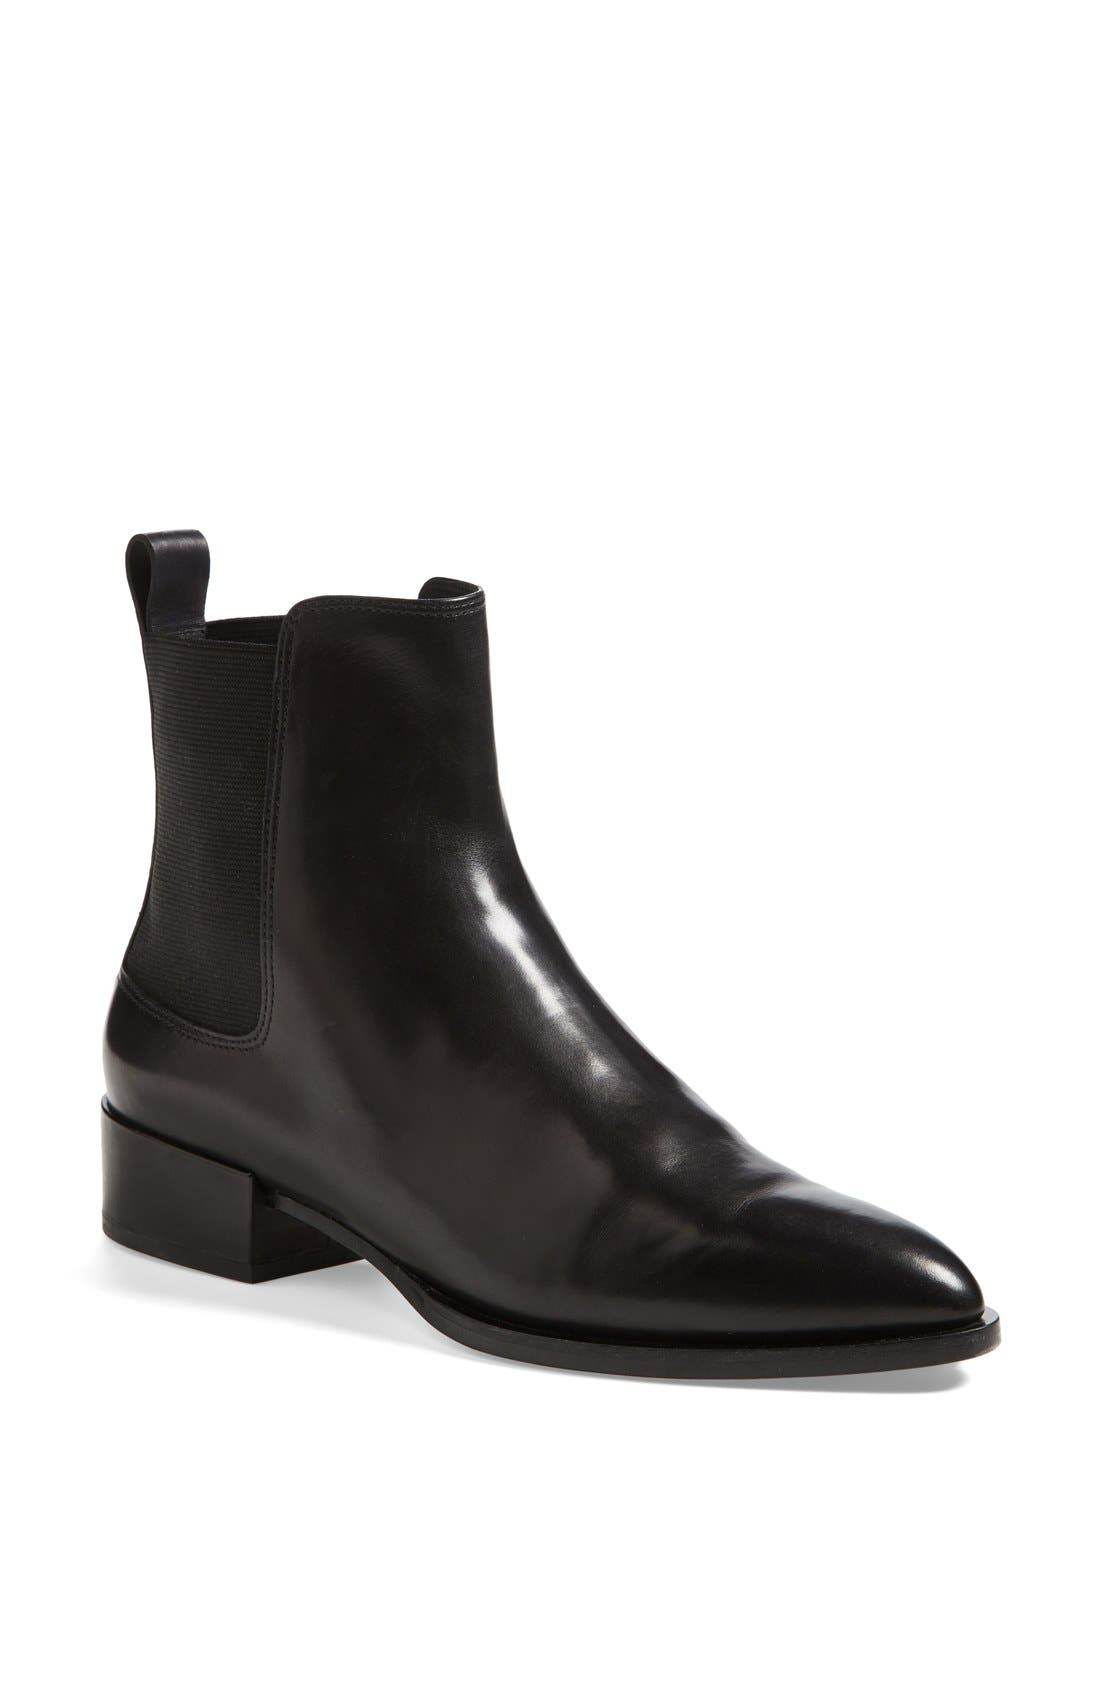 VINCE, 'Yarmon' Almond Toe Calfskin Leather Chelsea Boot, Main thumbnail 1, color, 002